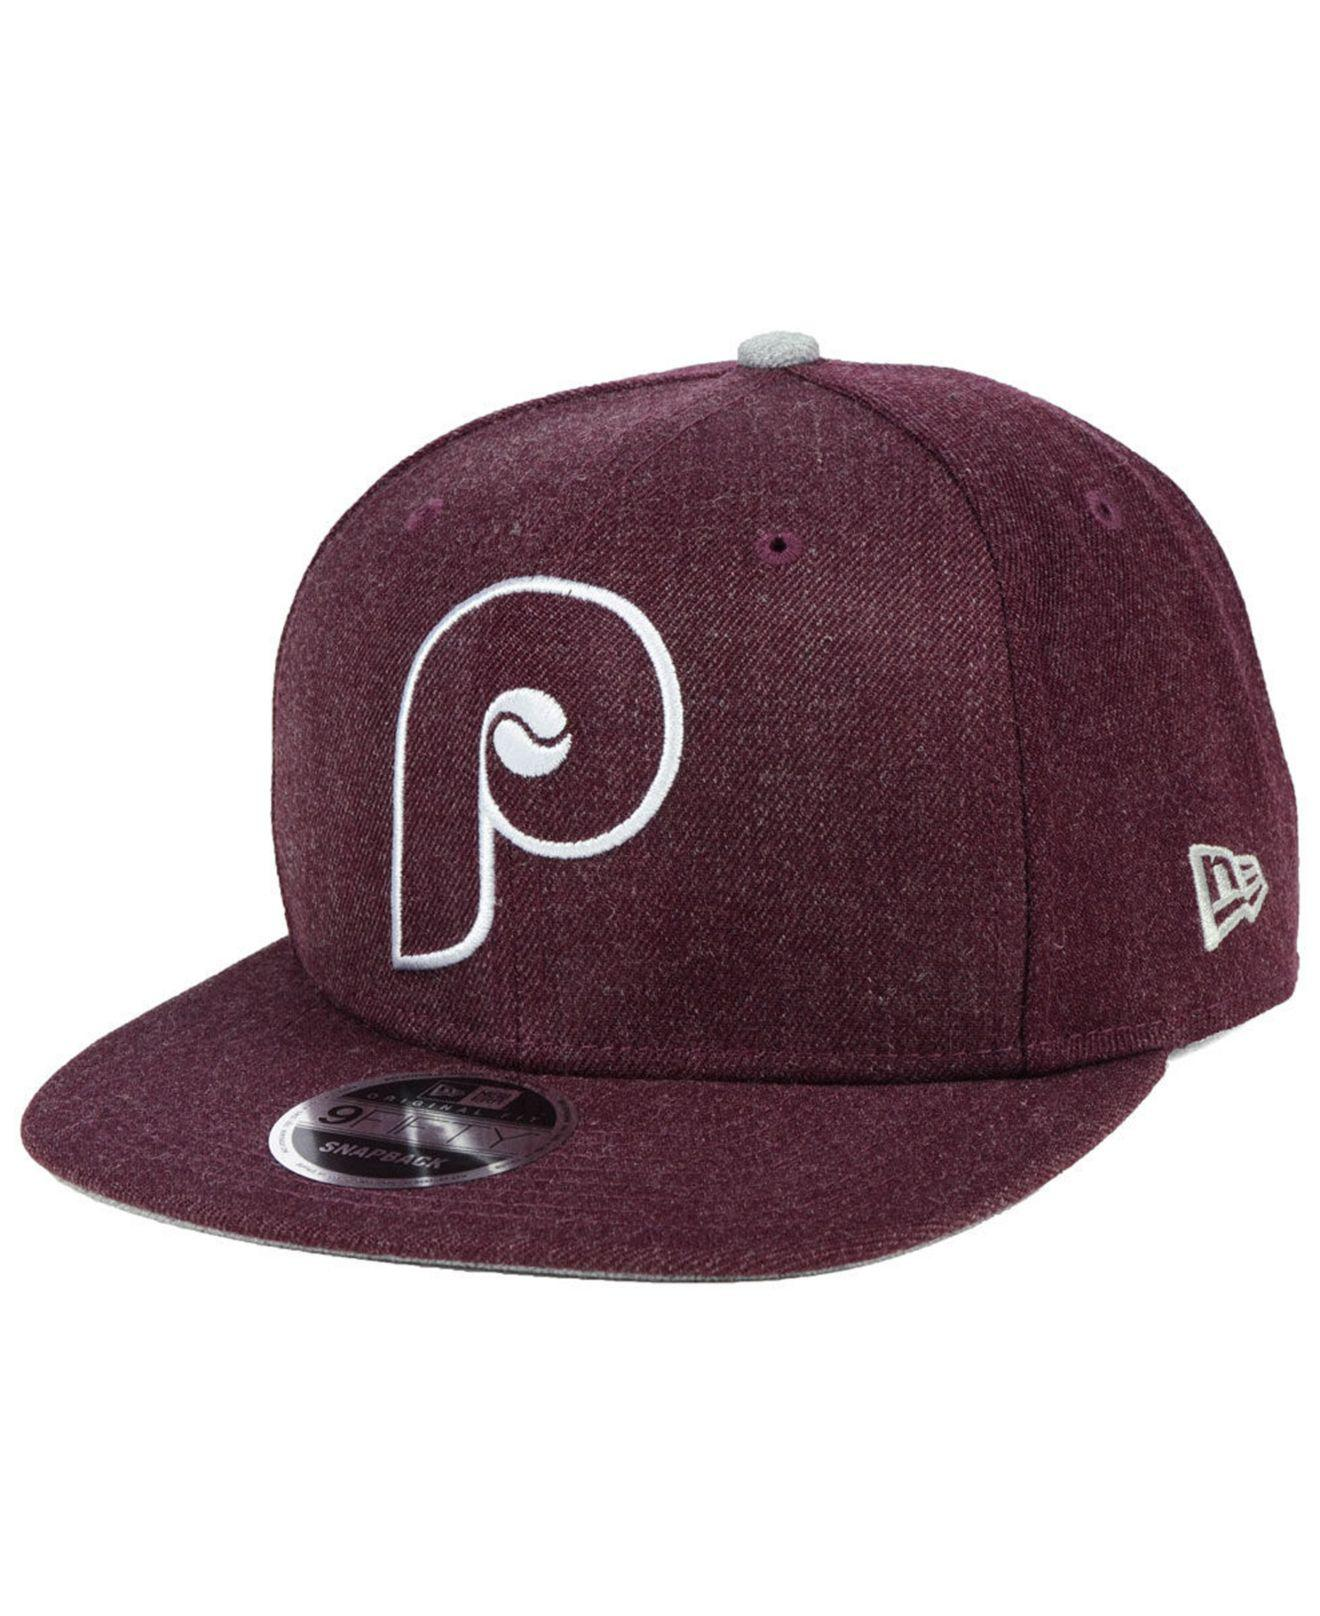 newest e3b15 d9c48 KTZ Philadelphia Phillies Heather Hype 9fifty Snapback Cap in Purple ...